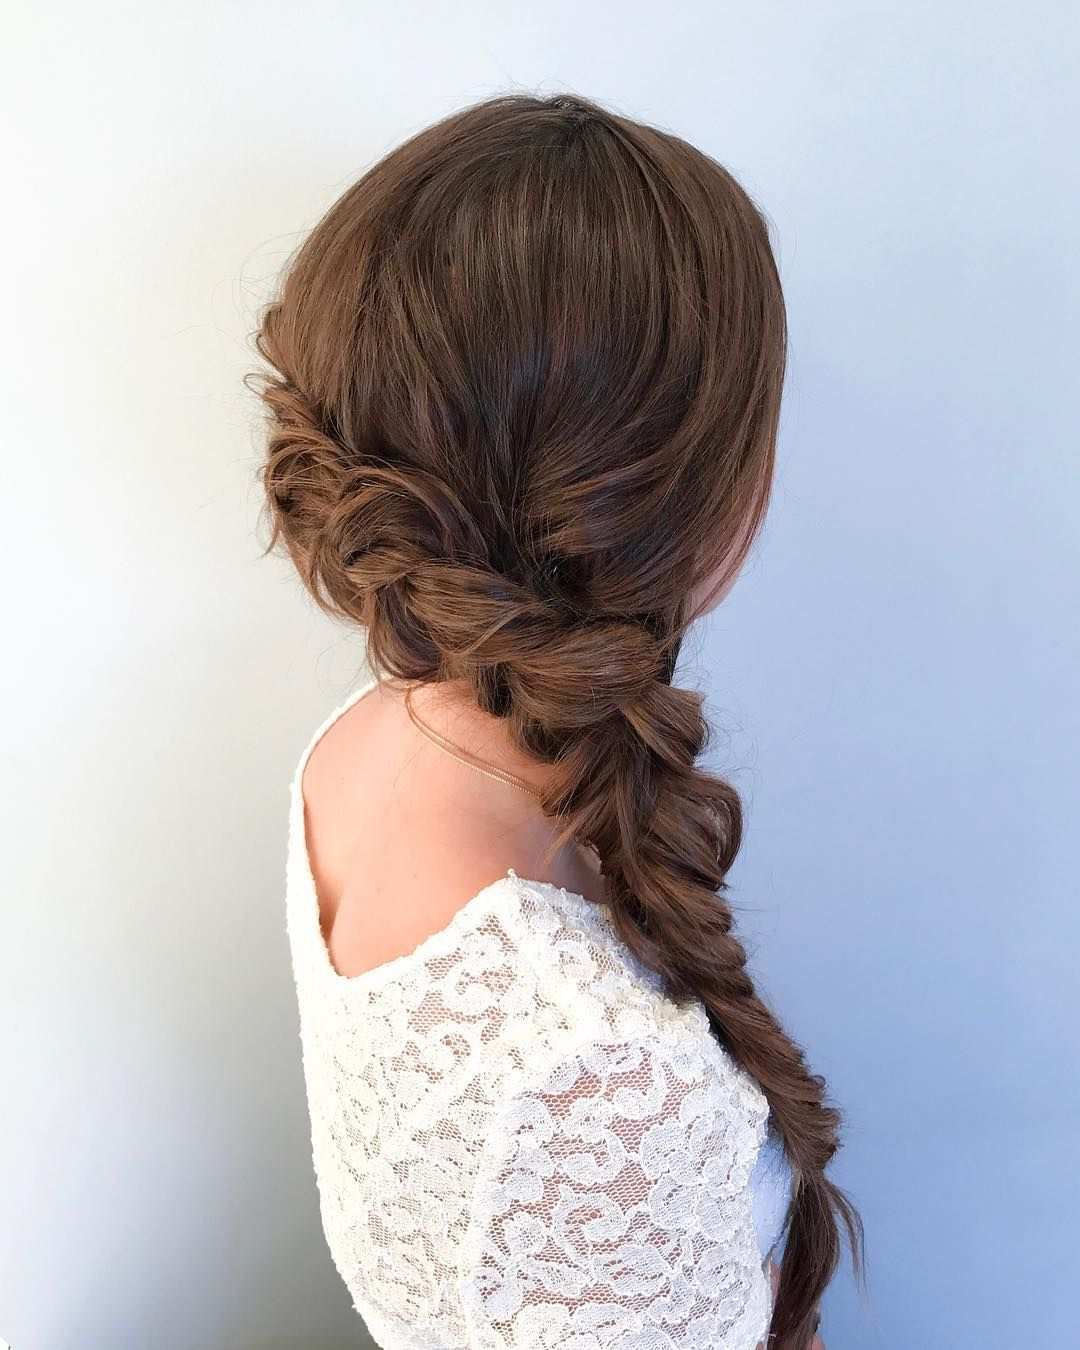 A Side Plait With Plenty Of Romance Alliedoeshair Side Plait Hairstyles Braided Hairstyles For Wedding Plaits Hairstyles